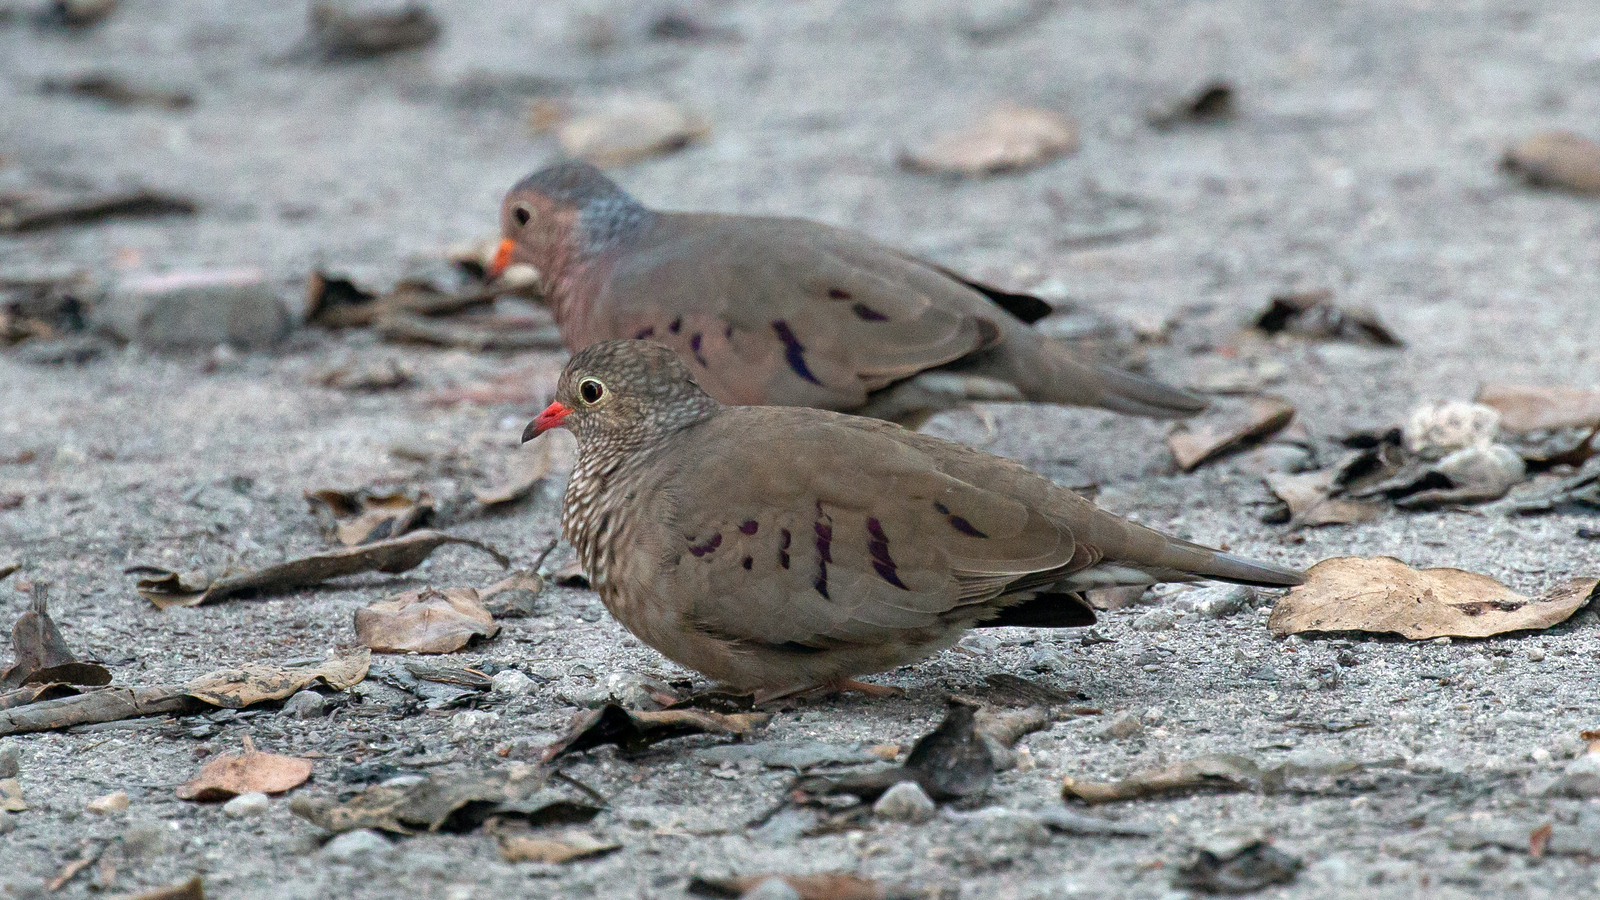 Photograph of Common Ground-Doves